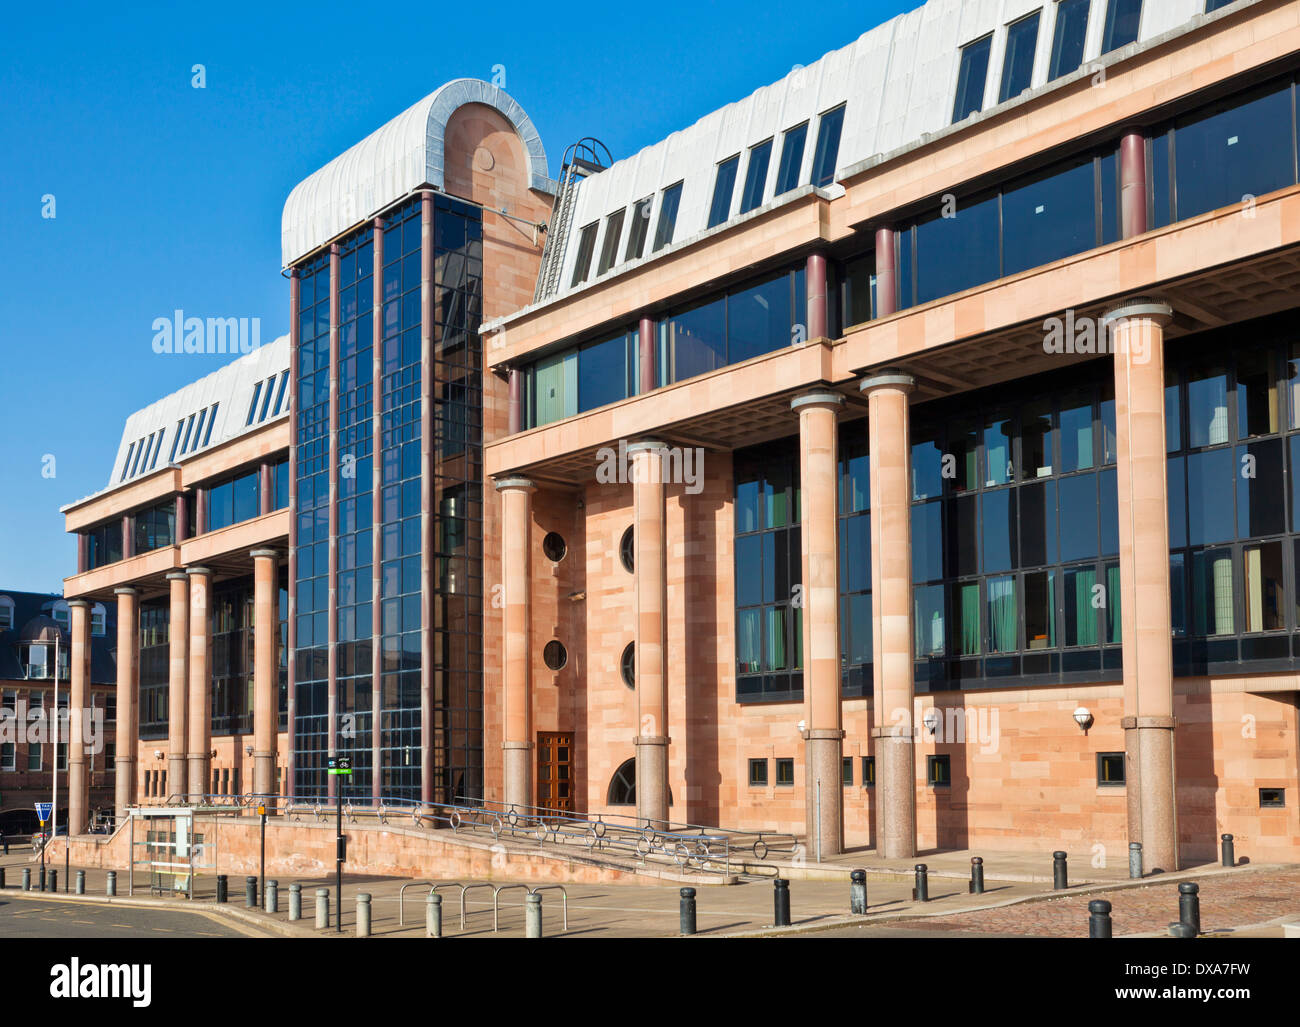 Front entrance of Newcastle crown court Newcastle upon tyne Tyneside North east England GB UK EU Europe - Stock Image